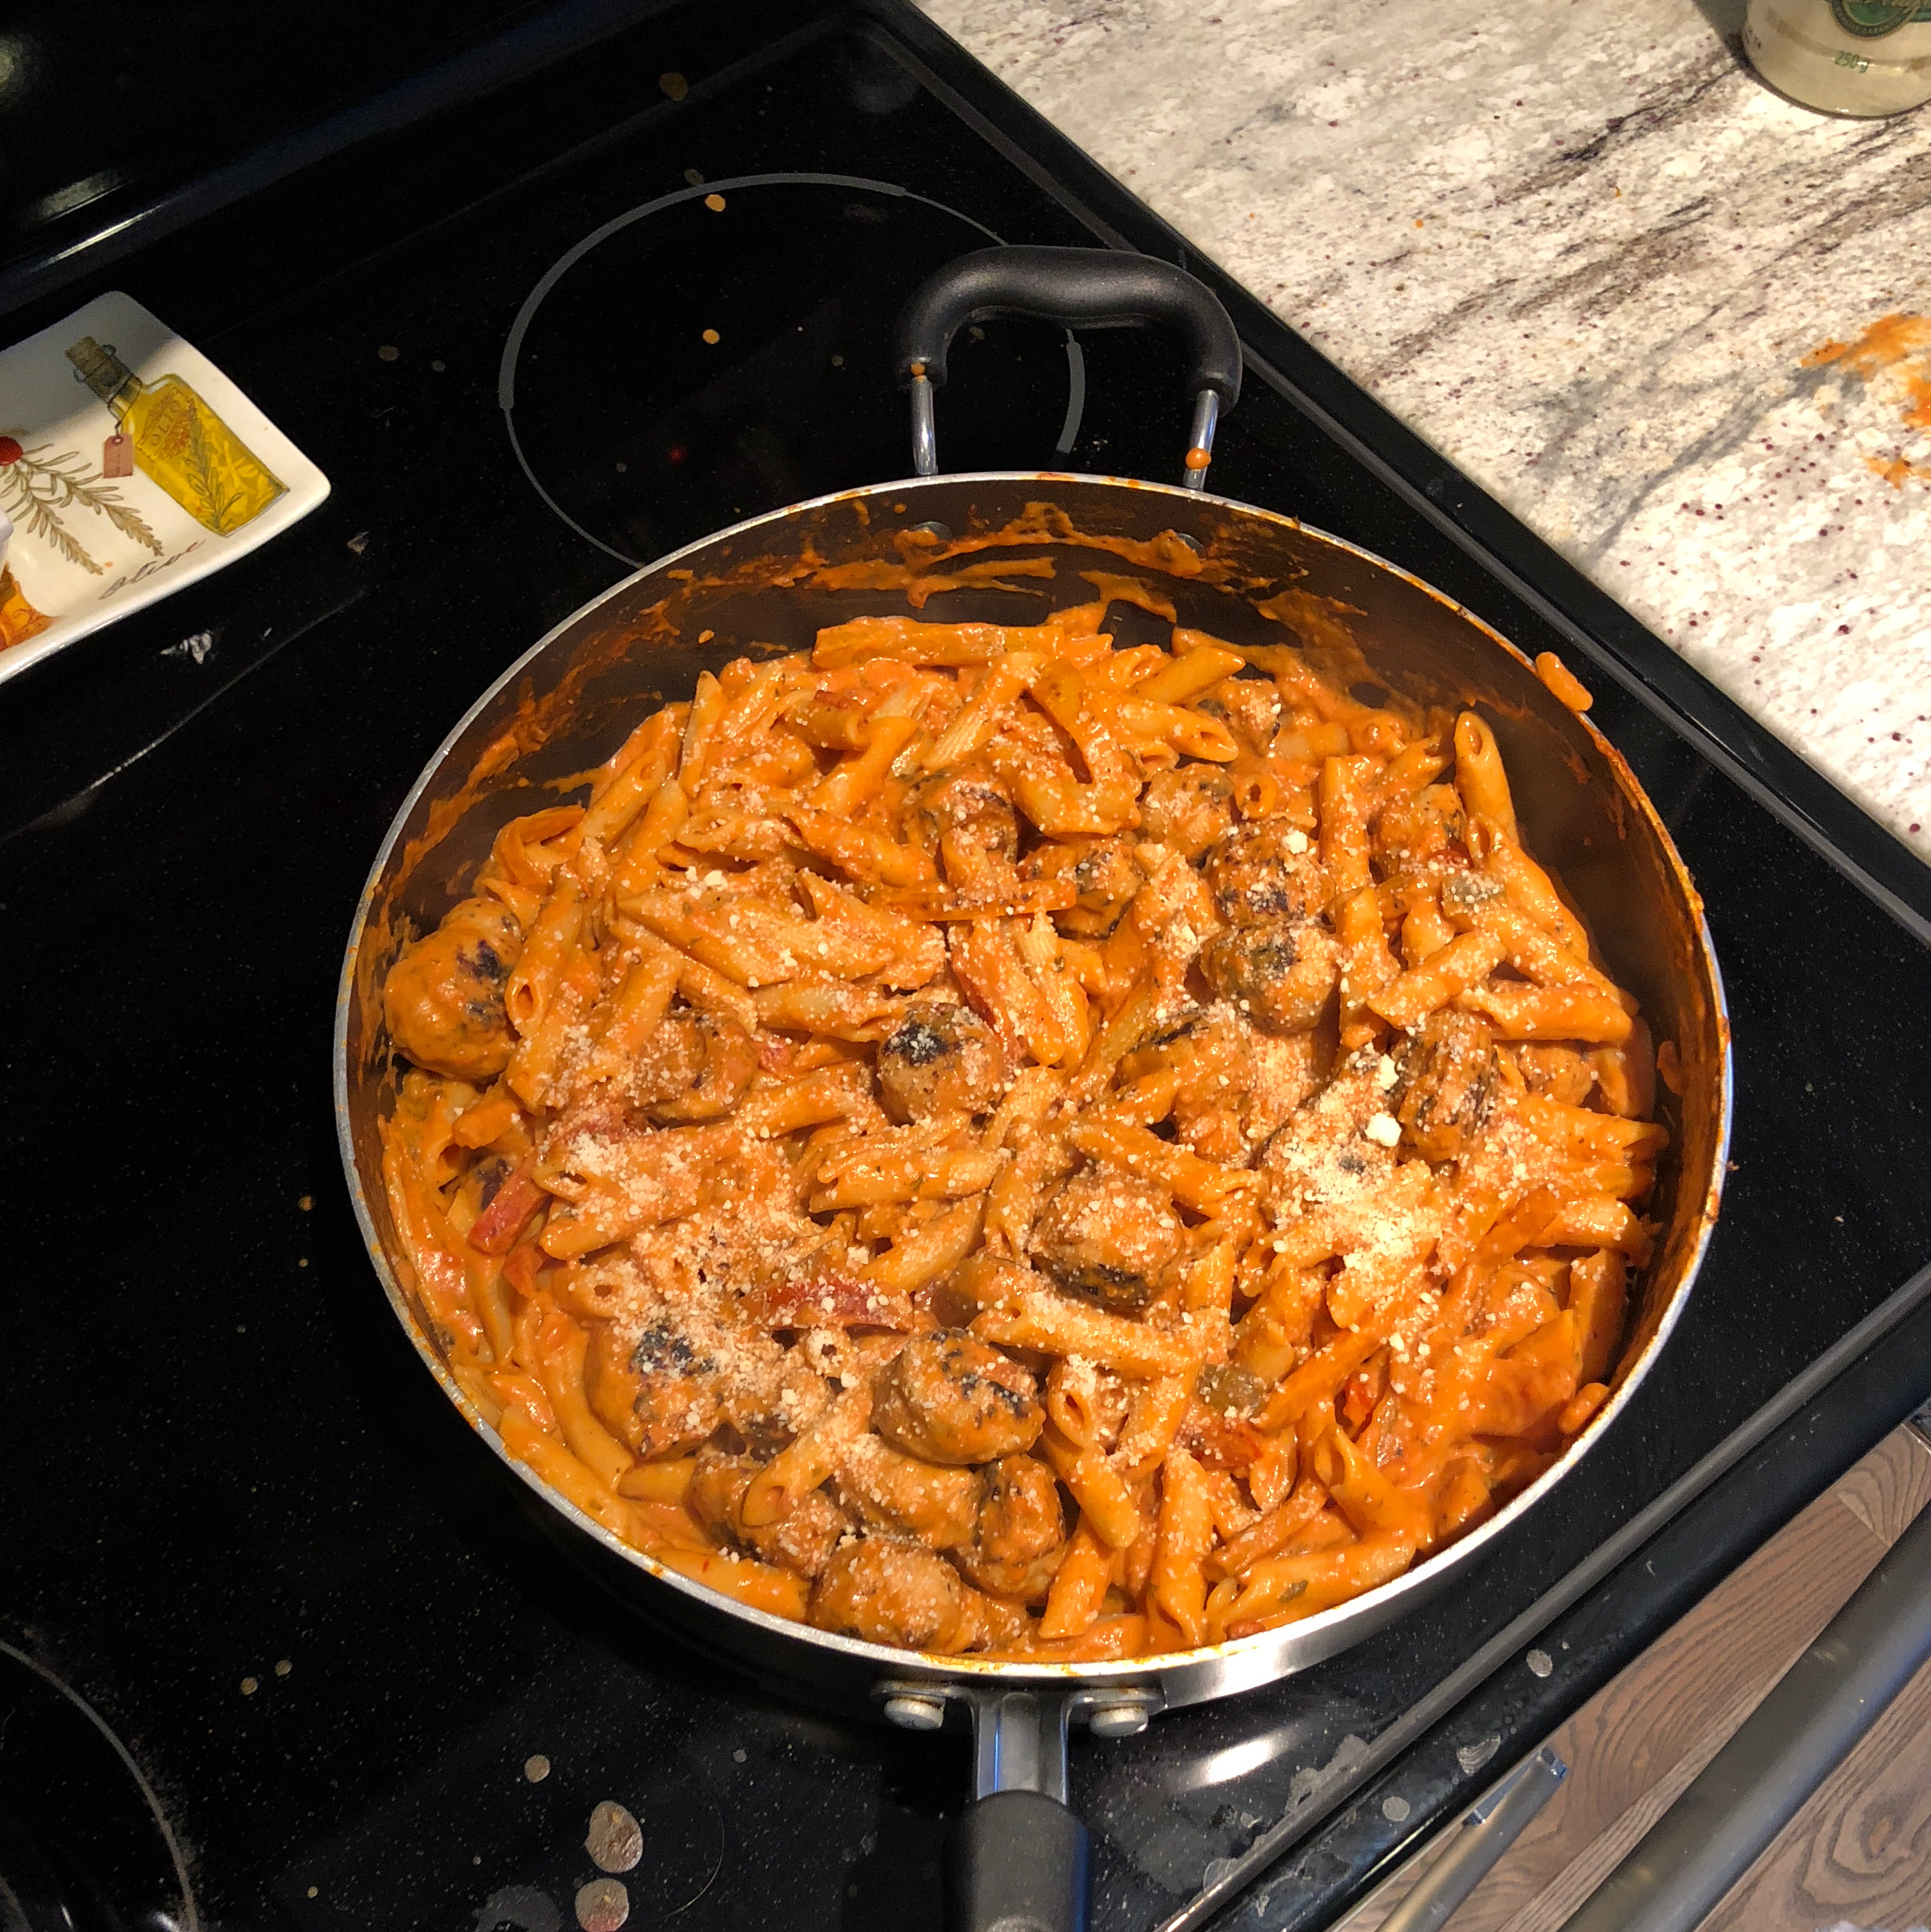 Zesty Penne, Sausage and Peppers Blaine Gibson